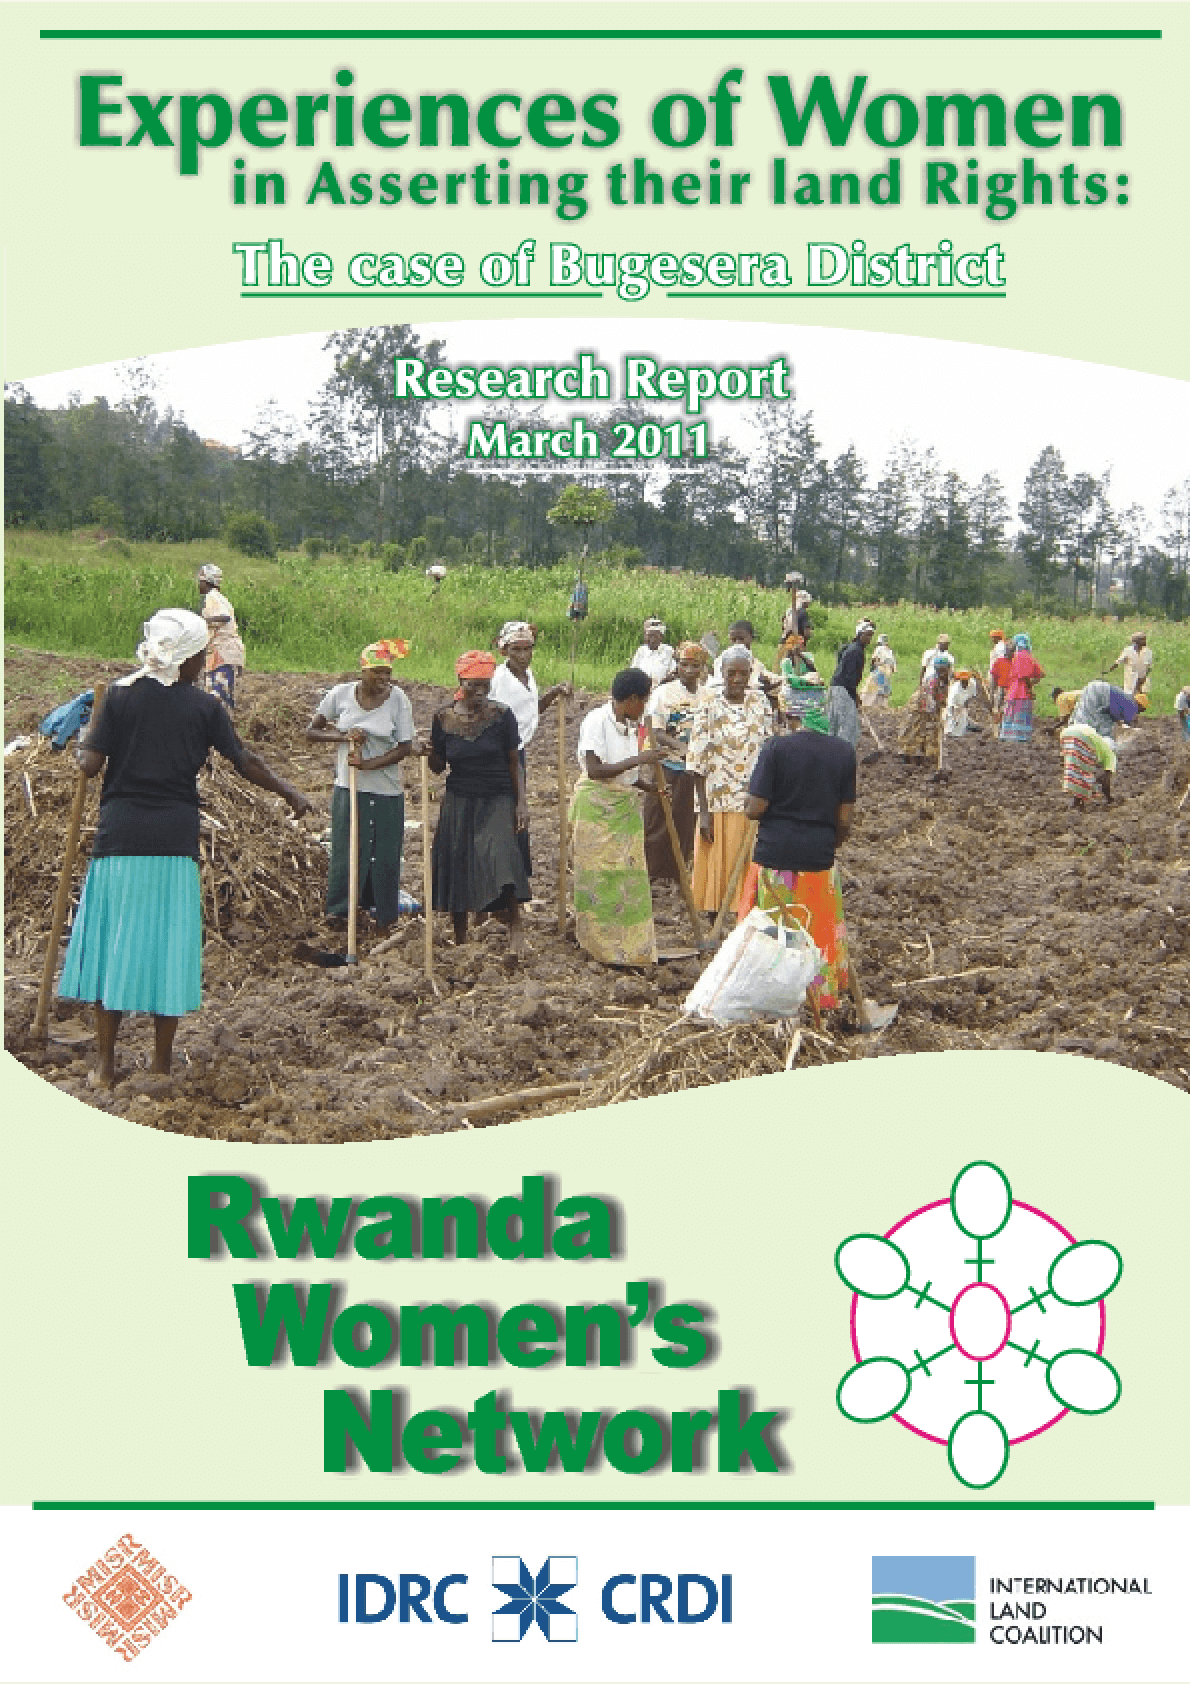 Experiences of Women in Asserting their Land Rights: The case of Bugesera District